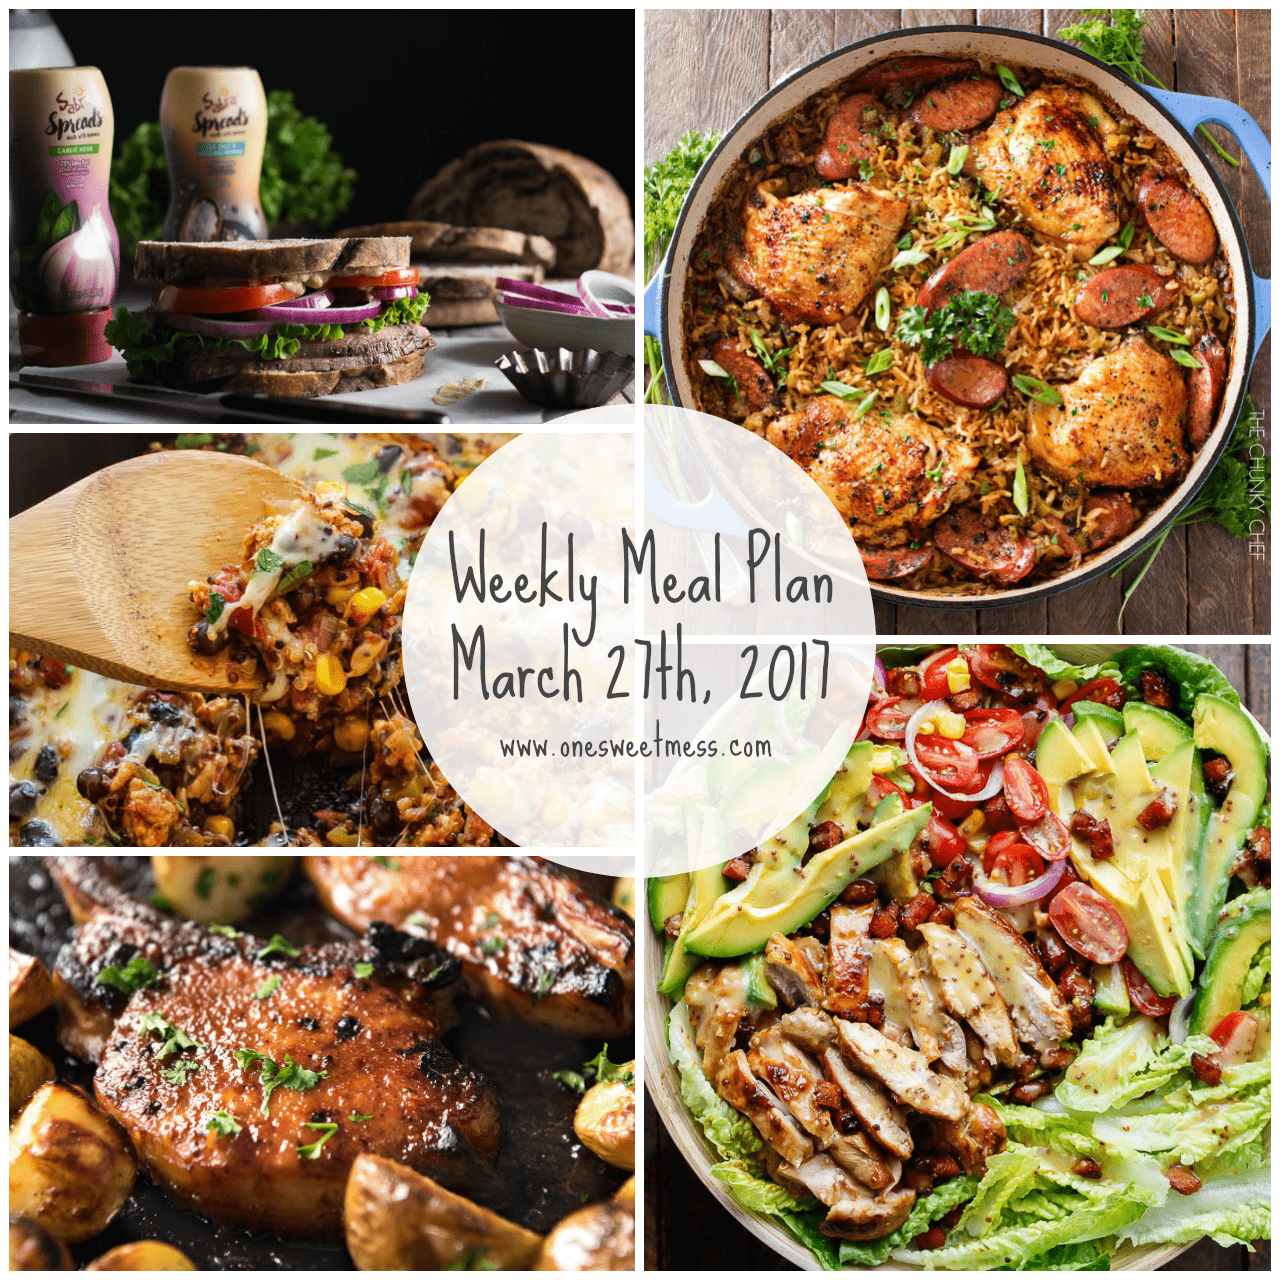 Week of March 27th, 2017 Weekly Meal Plan + Printable Grocery List